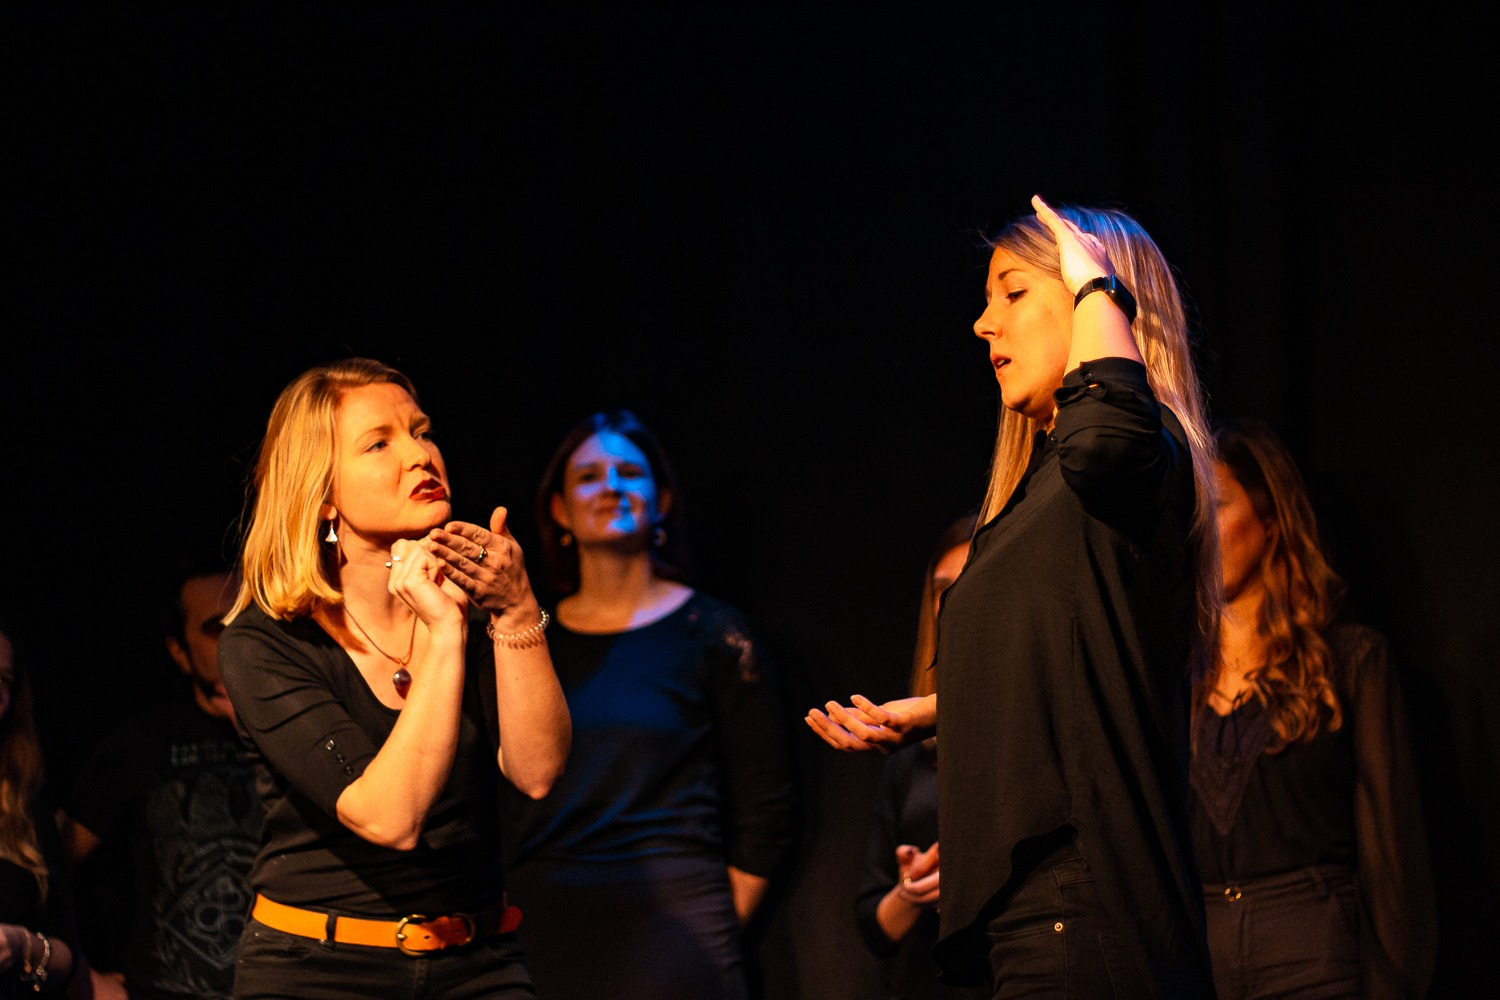 Act Attack's improv and physical show. A group of people on stage wearing black. Two blonde women talking or gesturing